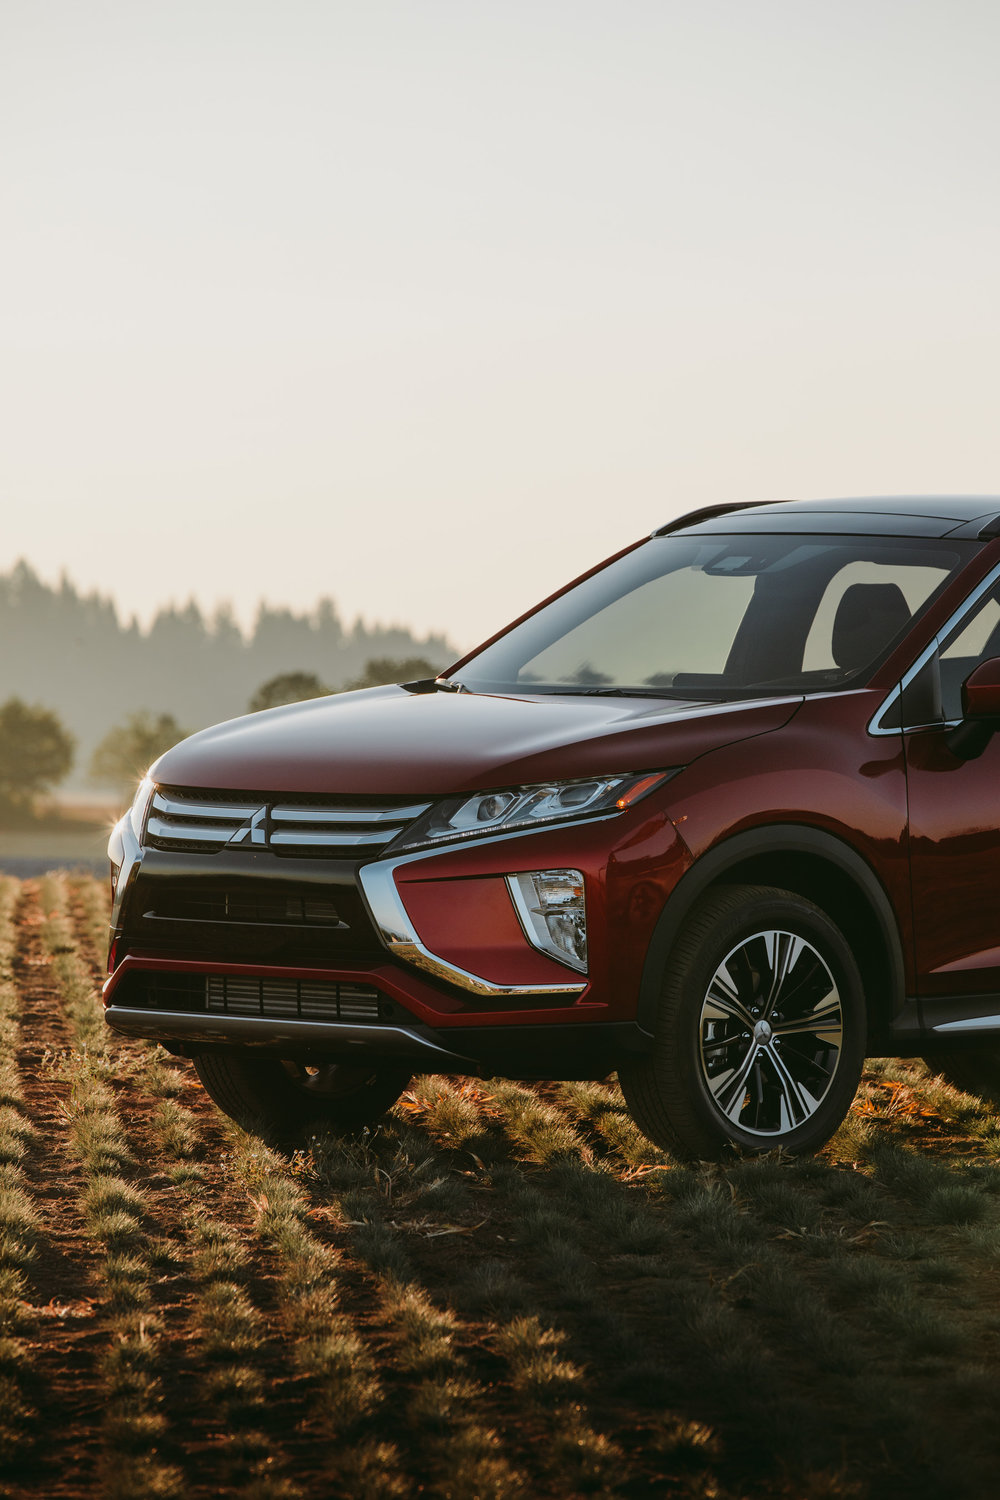 MikeSeehagel_Mitsubishi_EclipseCross_Day01_5D4_4438.JPG